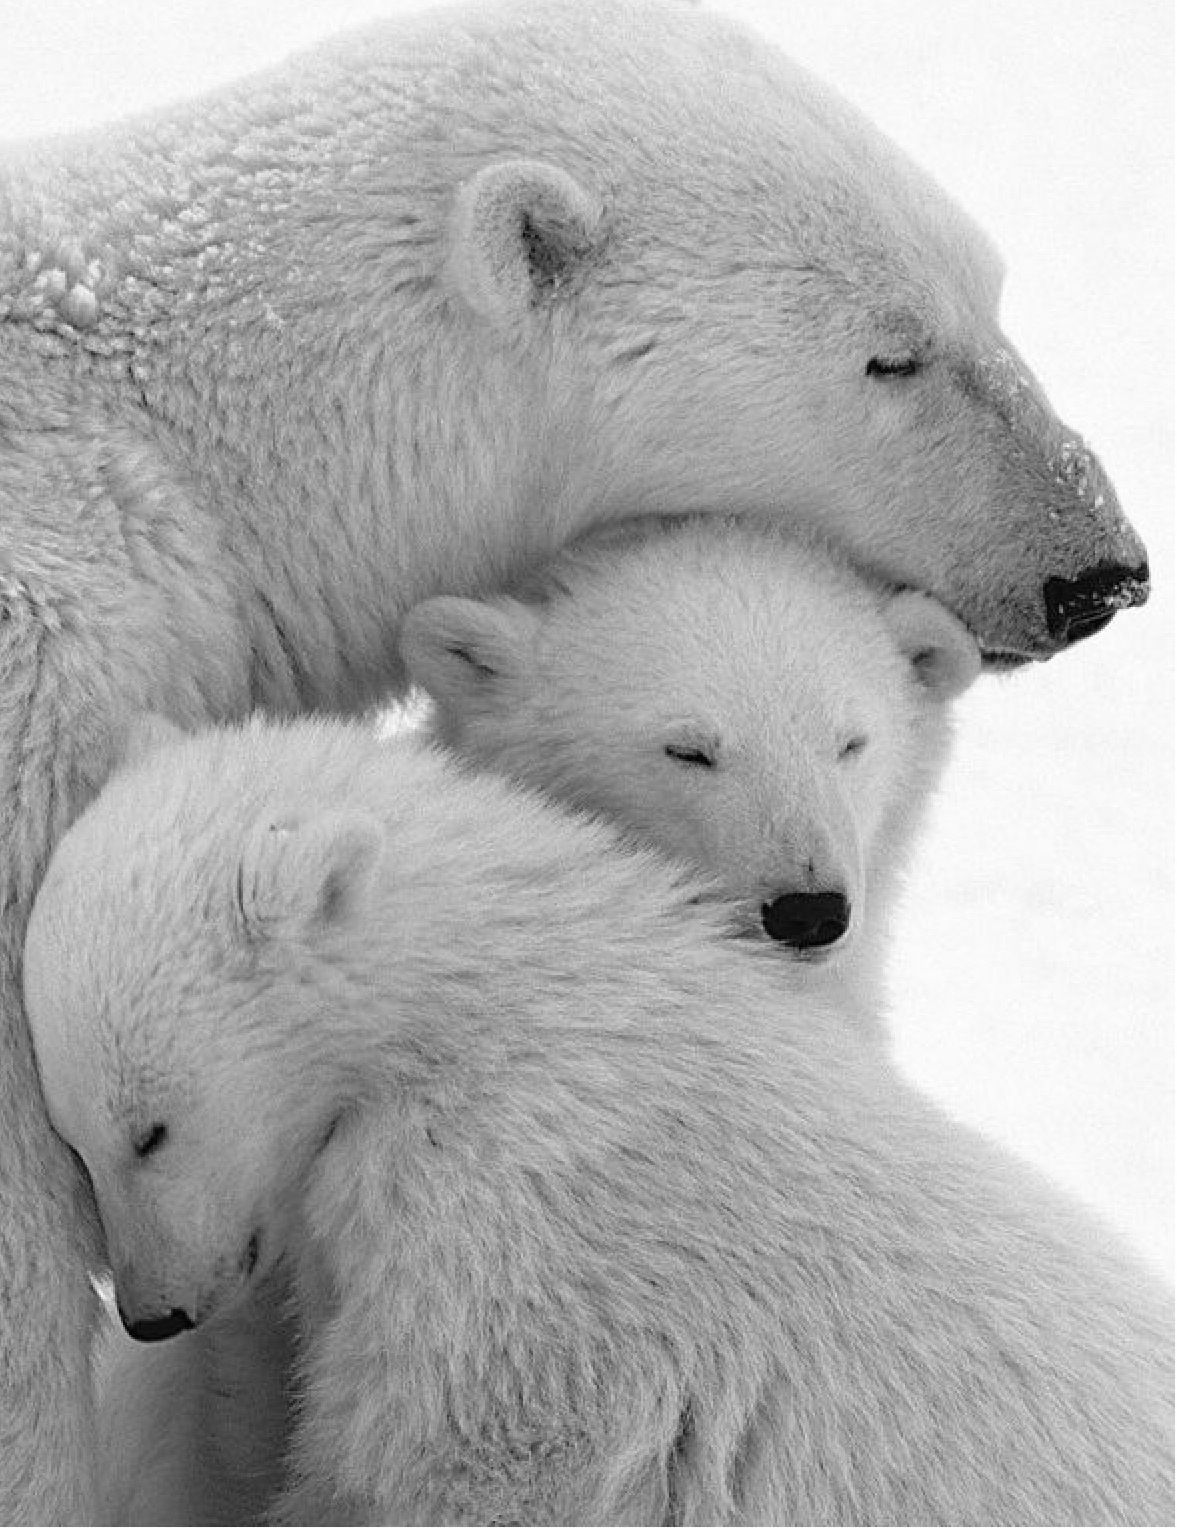 Polar bears, cuddly or what?